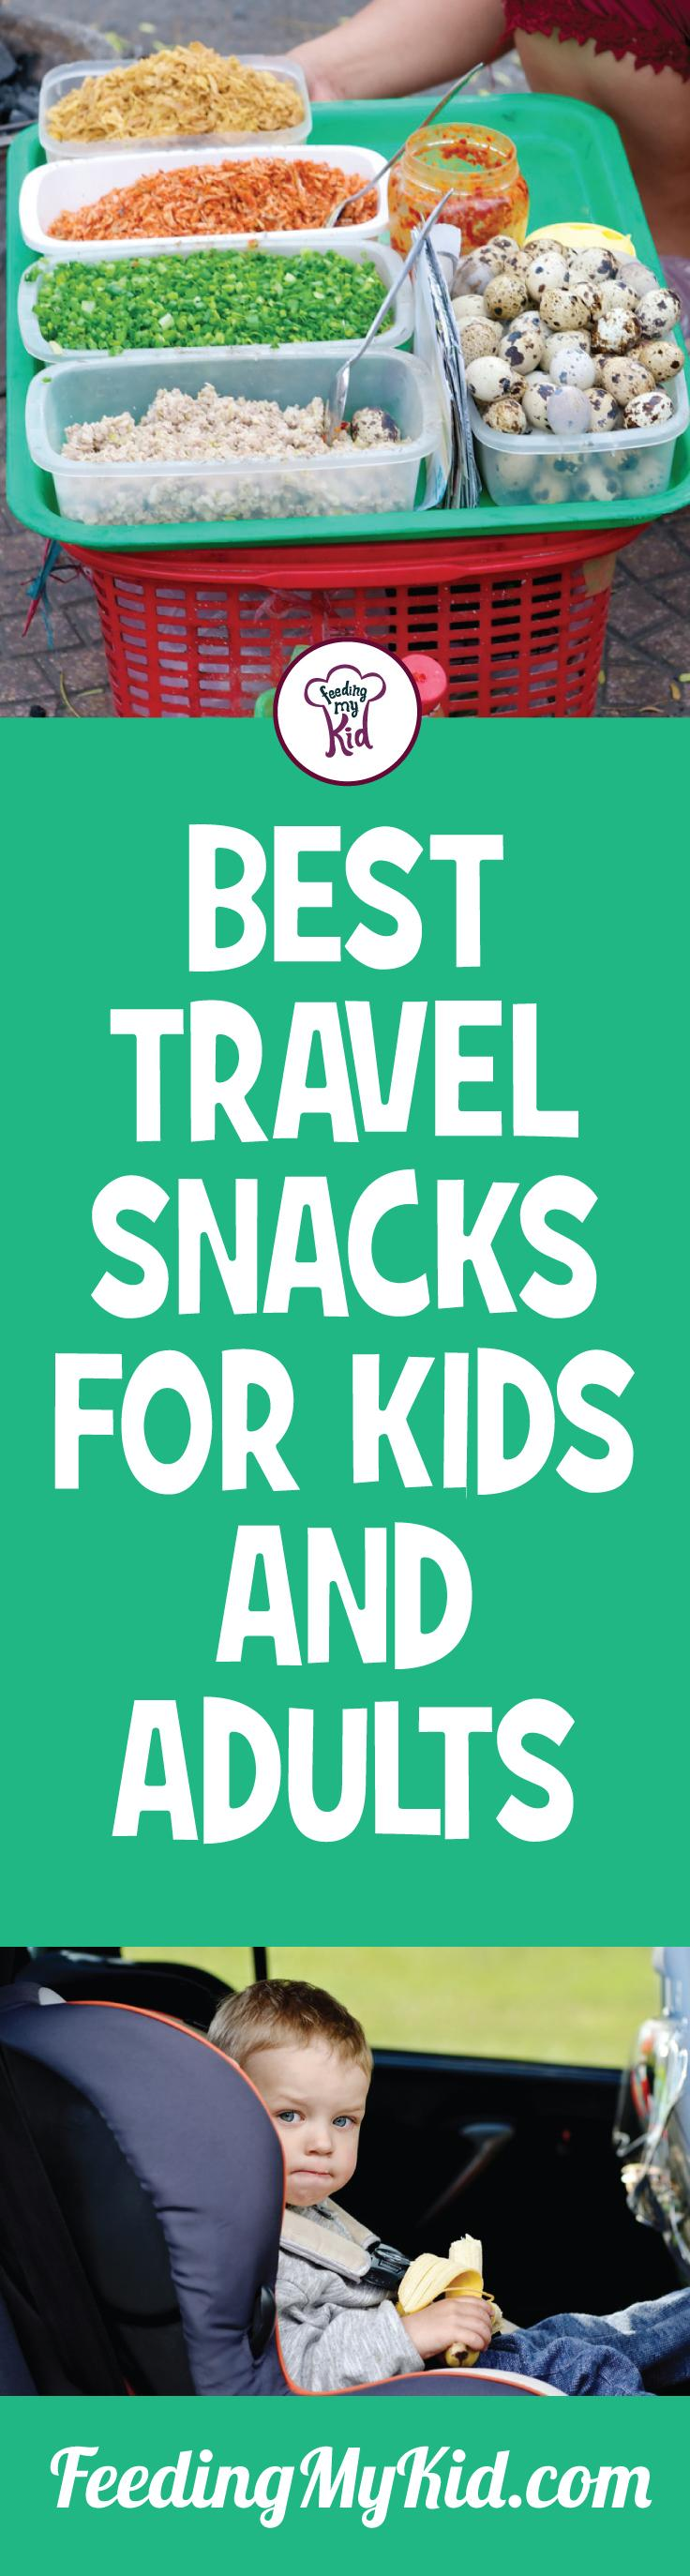 Going on an adventure with the family? Check out these travel food ideas in this great video! You'll learn just what snacks you should bring along with you. Feeding My Kid is a filled with all the information you need about how to raise your kids, from healthy tips to nutritious recipes. #FeedingMyKid #snacks #travelsnacks #travelfood